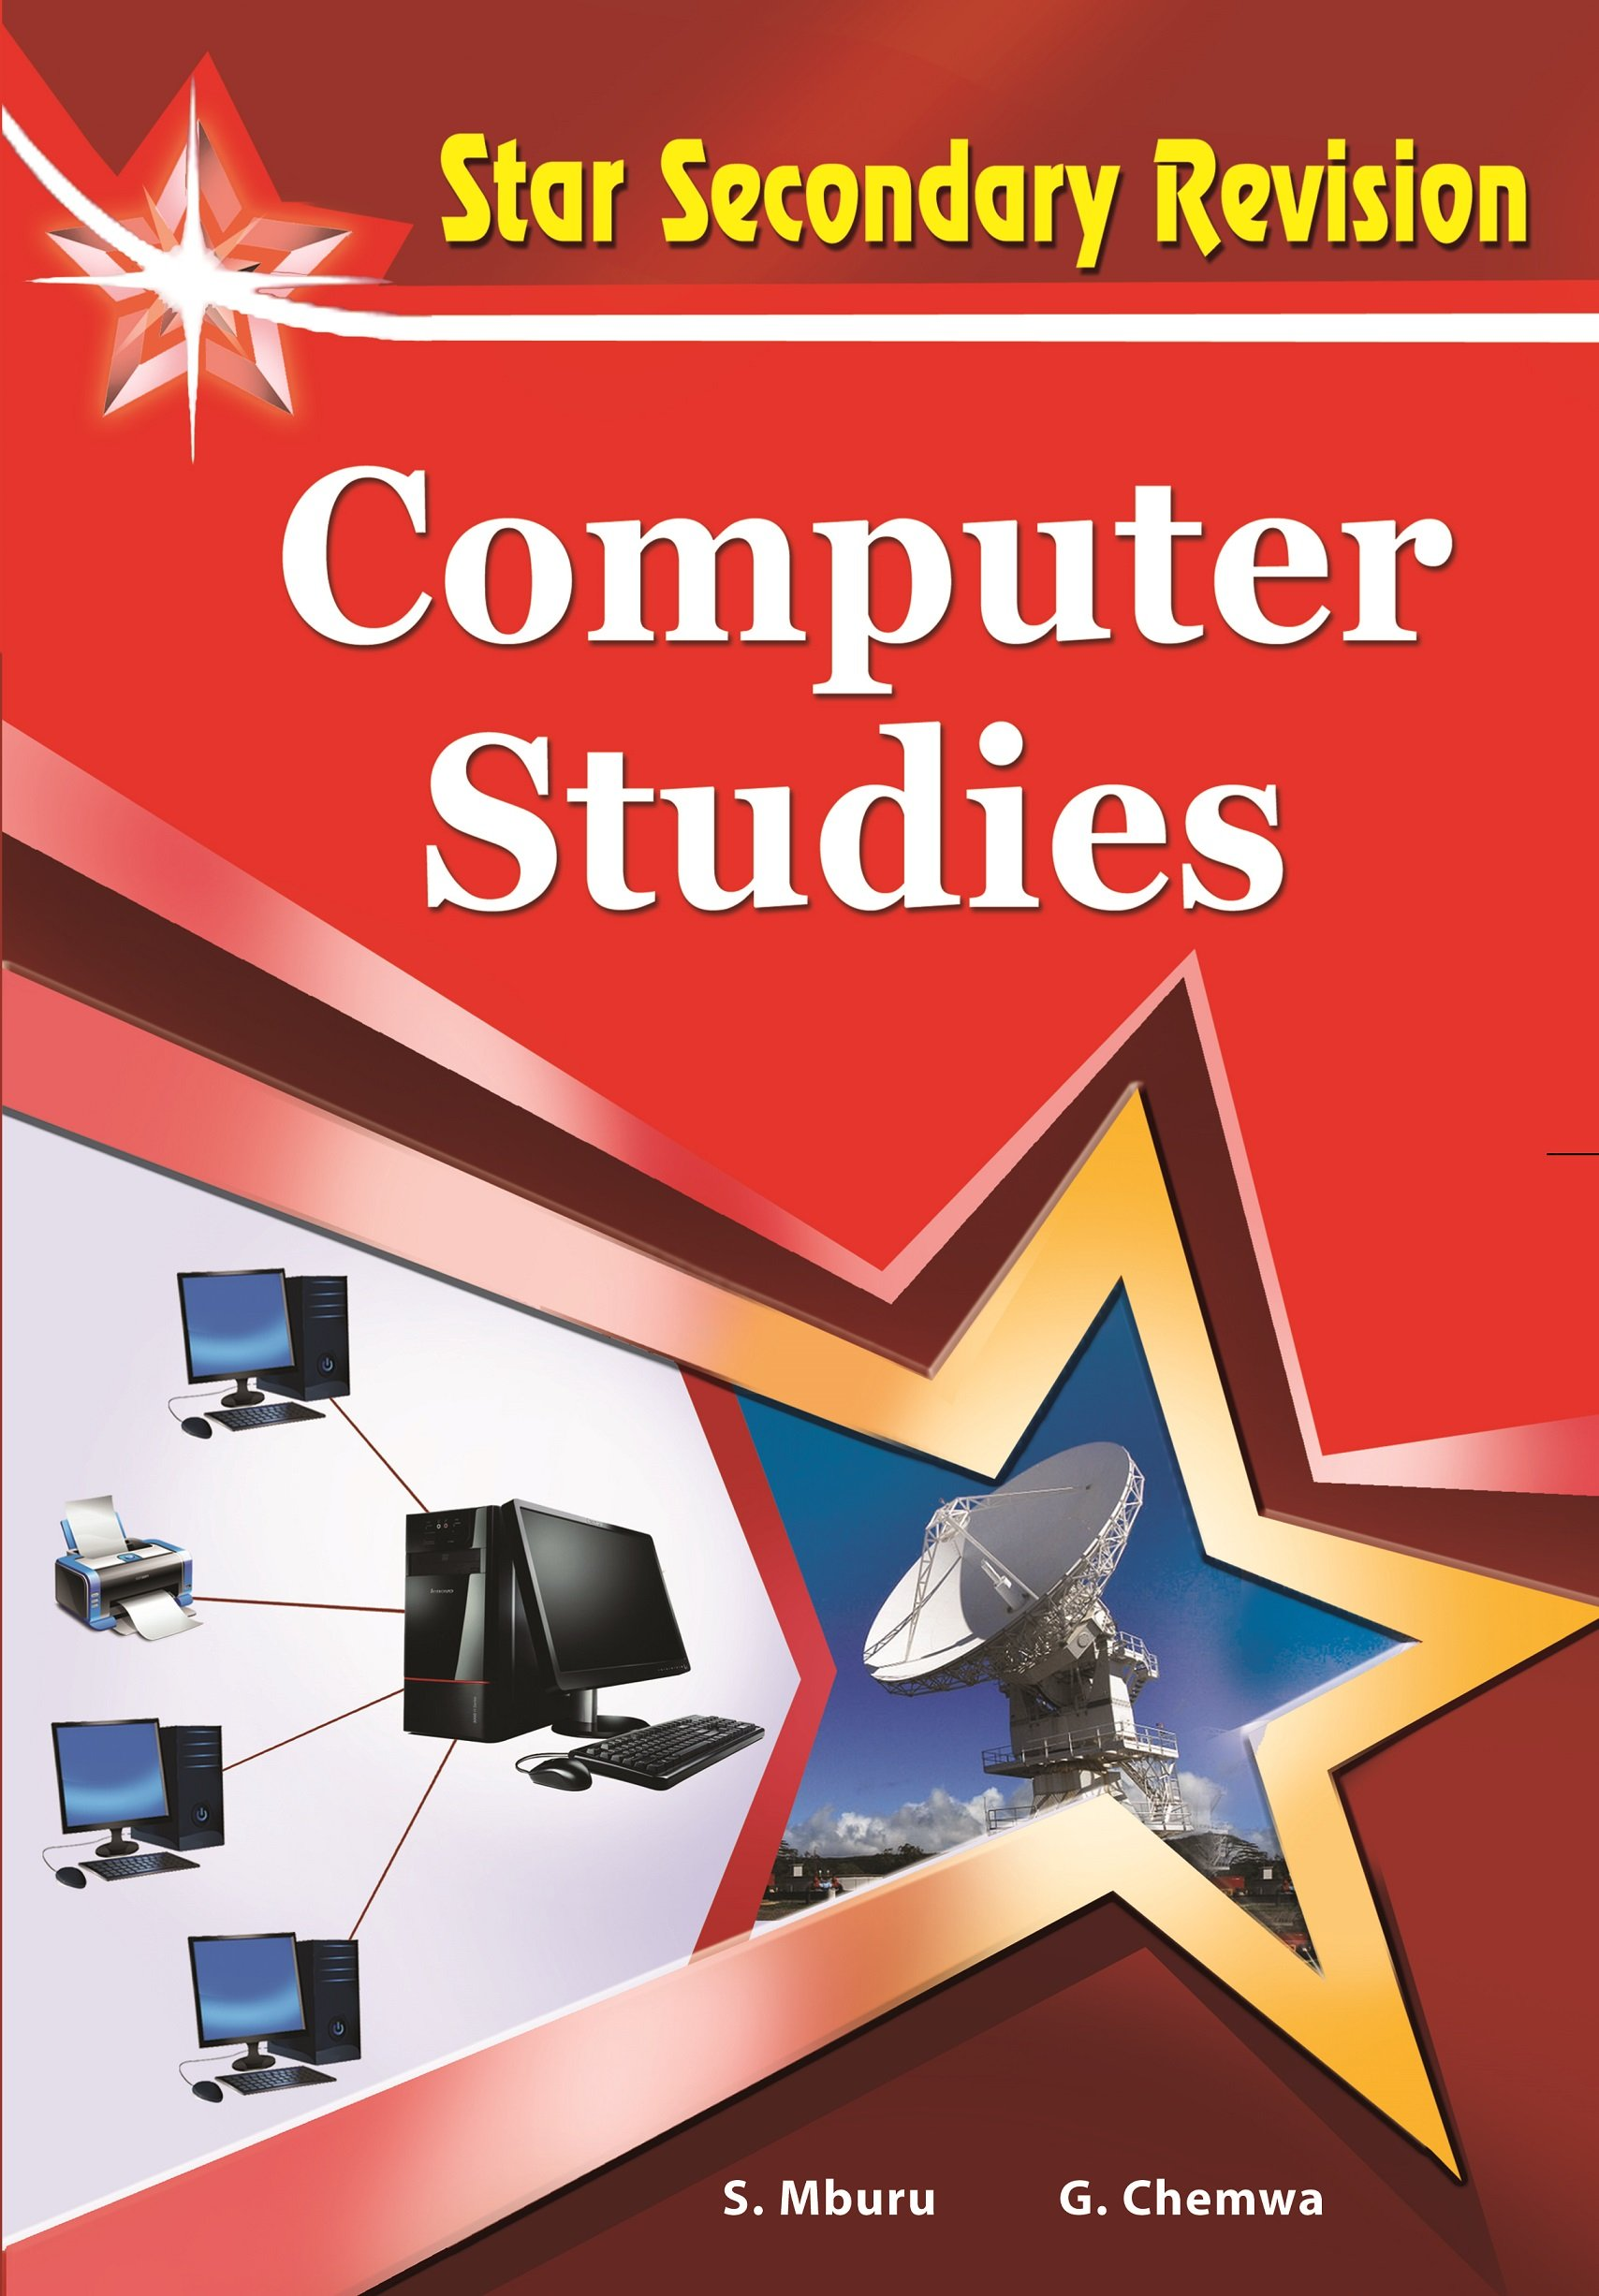 Star Secondary Revision Computer Studies | Text Book Centre